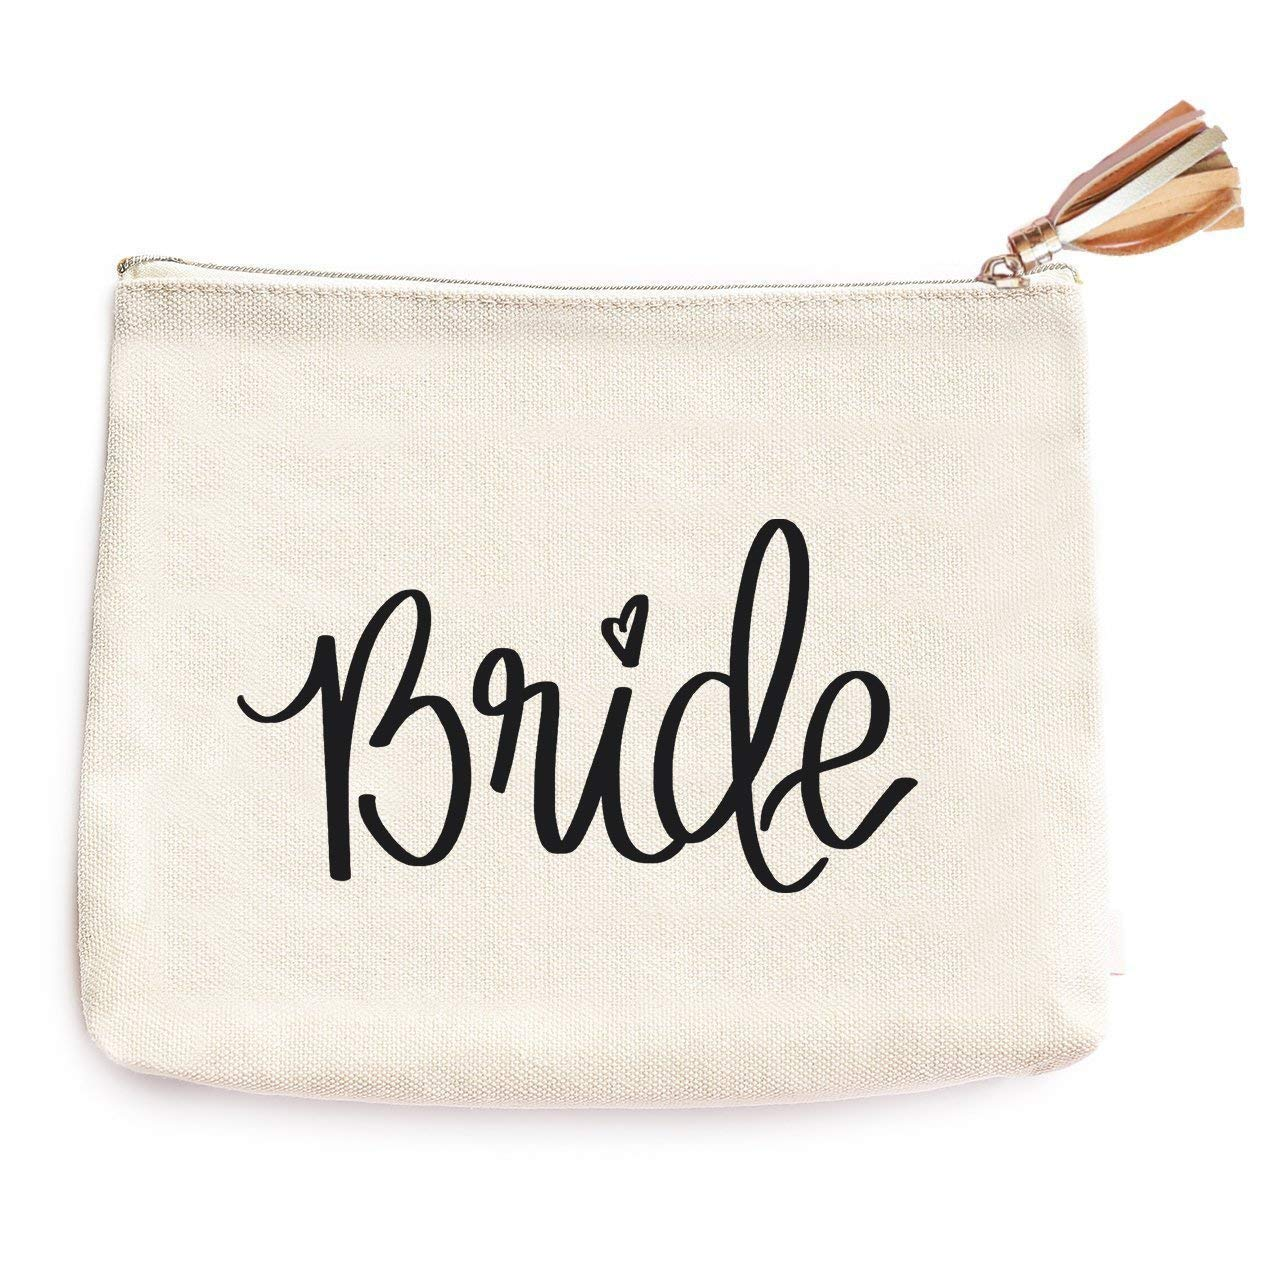 Get Quotations · Bride Canvas Makeup Bag   Wife Accessories Miss To Mrs Make -Up Holder Cosmetic Organizer d40e7c1935